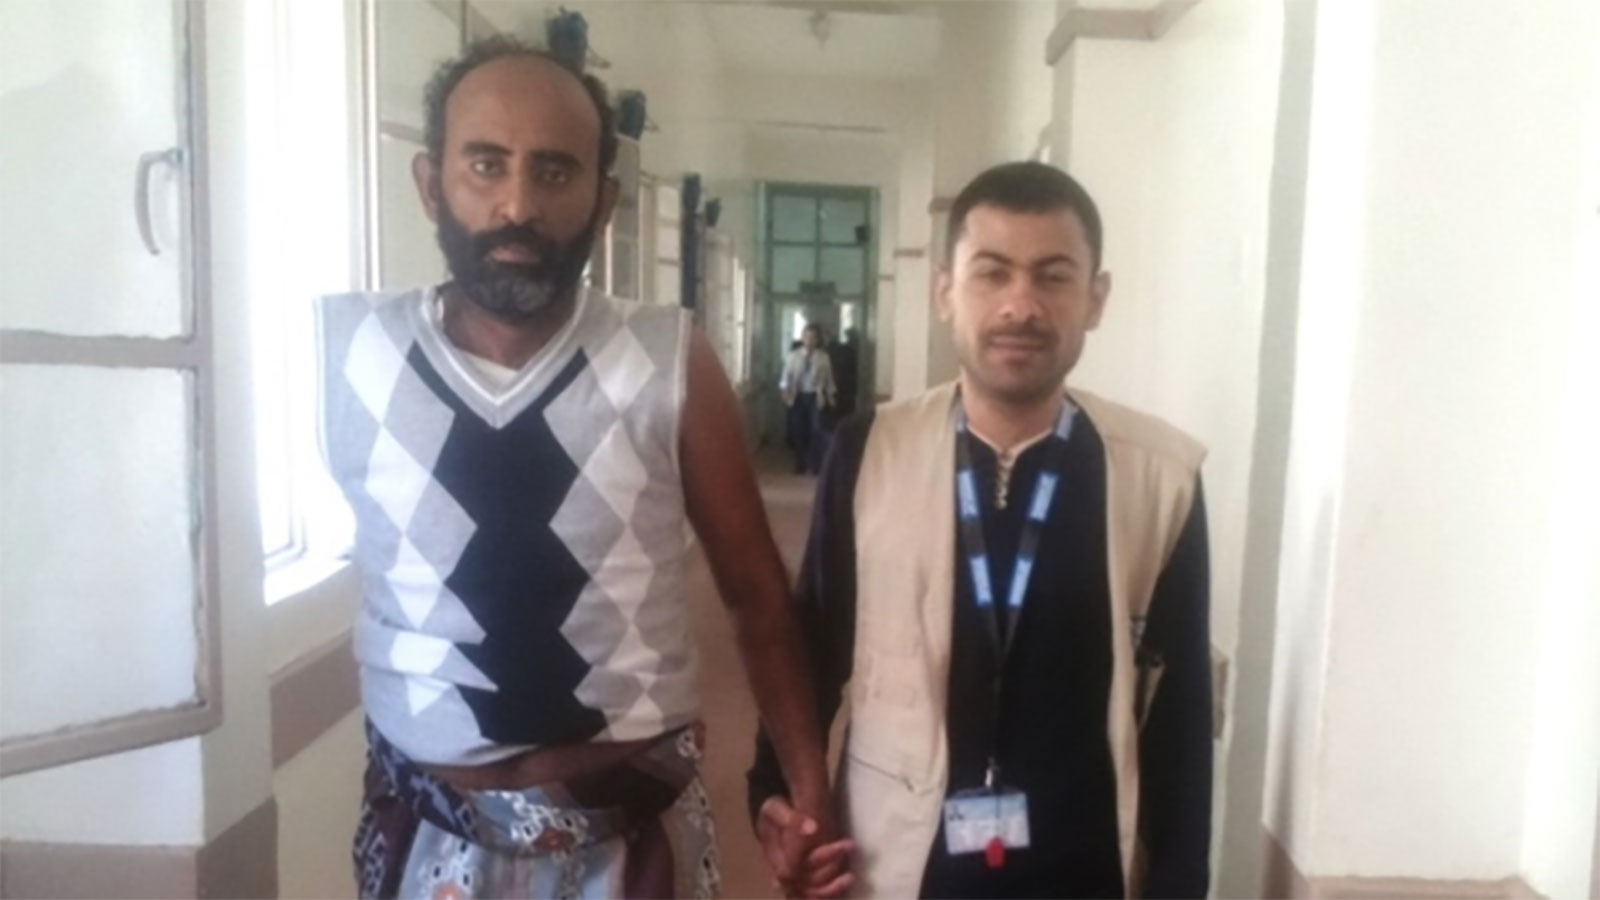 Abdulrahmam -who-was-injured-in-a-bombing-in-Yemen -walks-down-the-hall-of-a-hospital-with-support-from-an-HI-physical-therapist